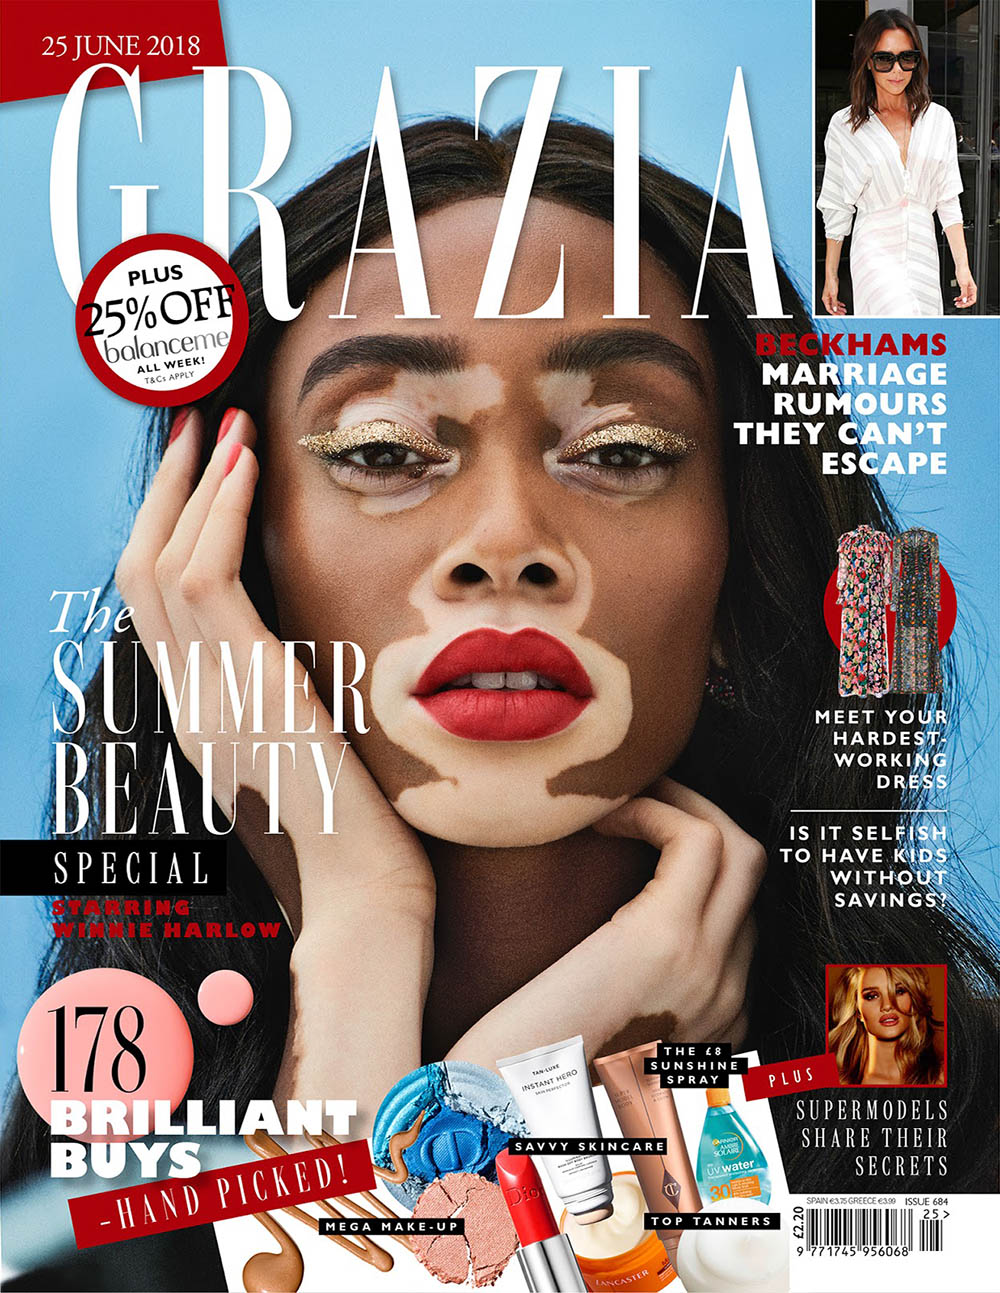 Winnie Harlow covers Grazia UK June 25th, 2018 by Jason Hetherington